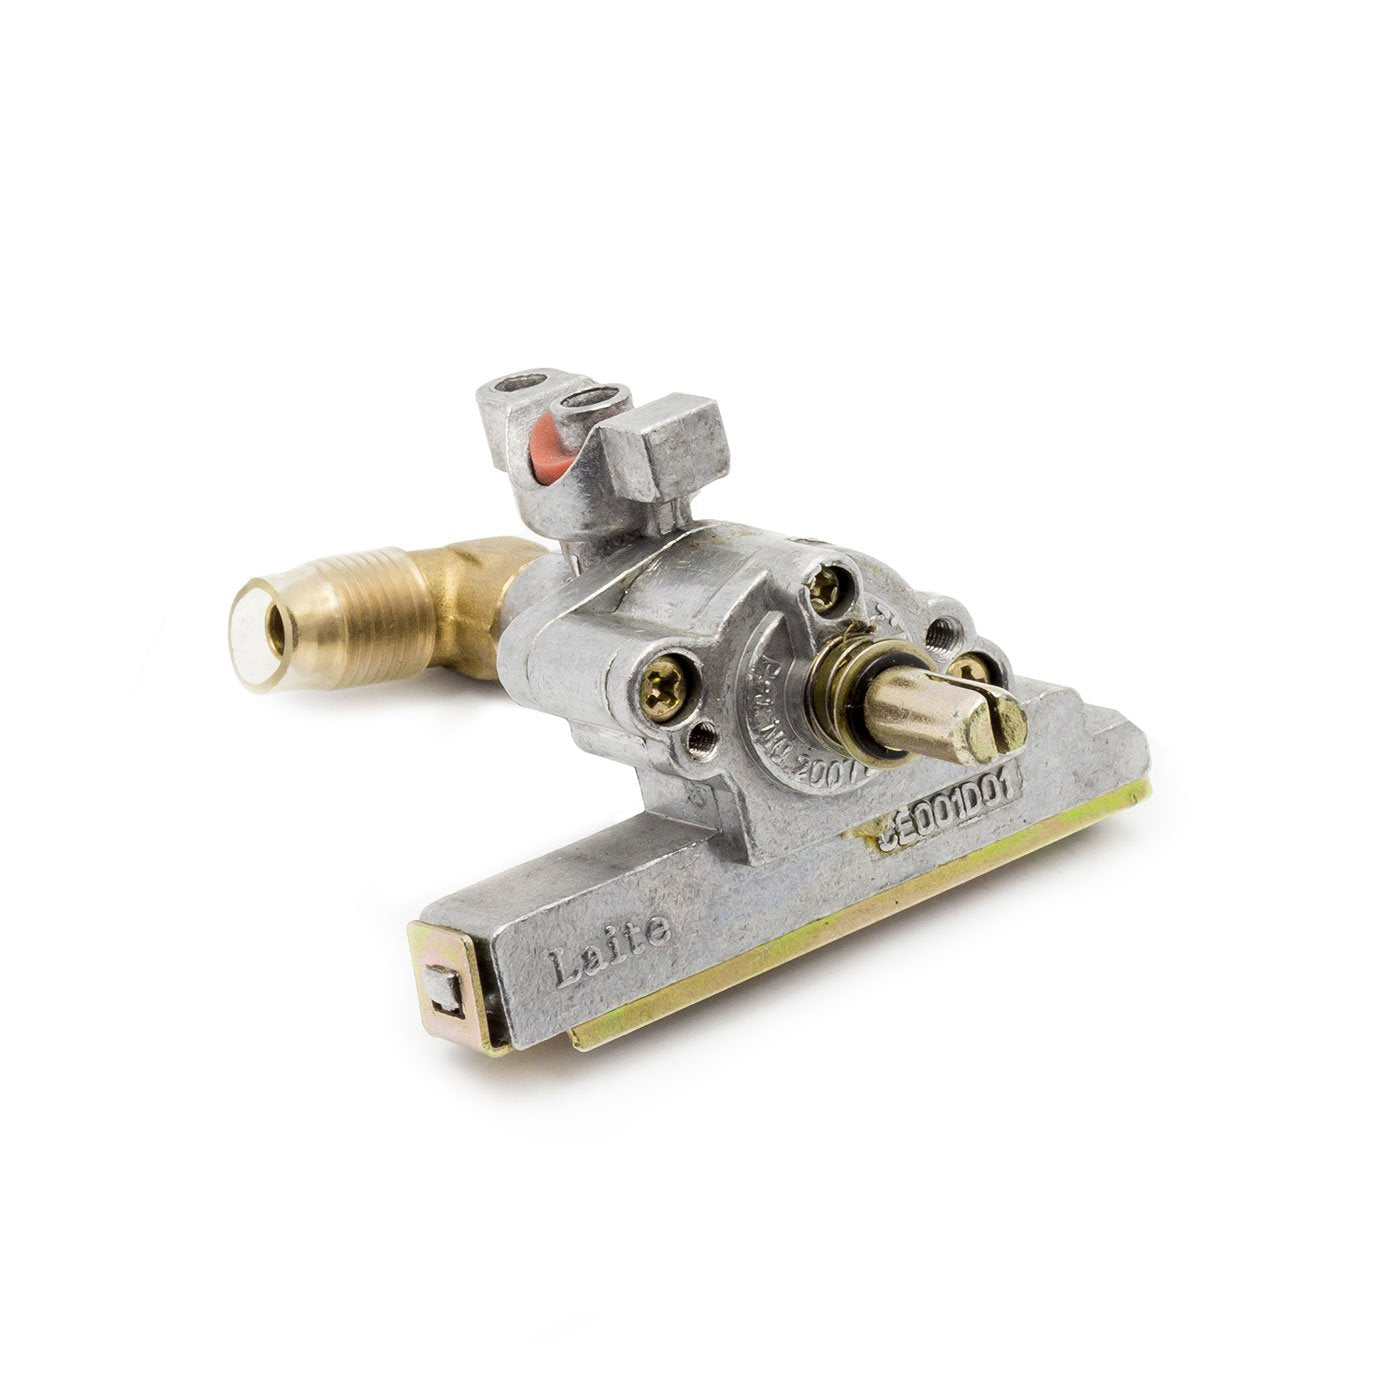 Summerset TRL, PRM, PRO Main Valve Summerset (Natural Gas) - BBQ Fix